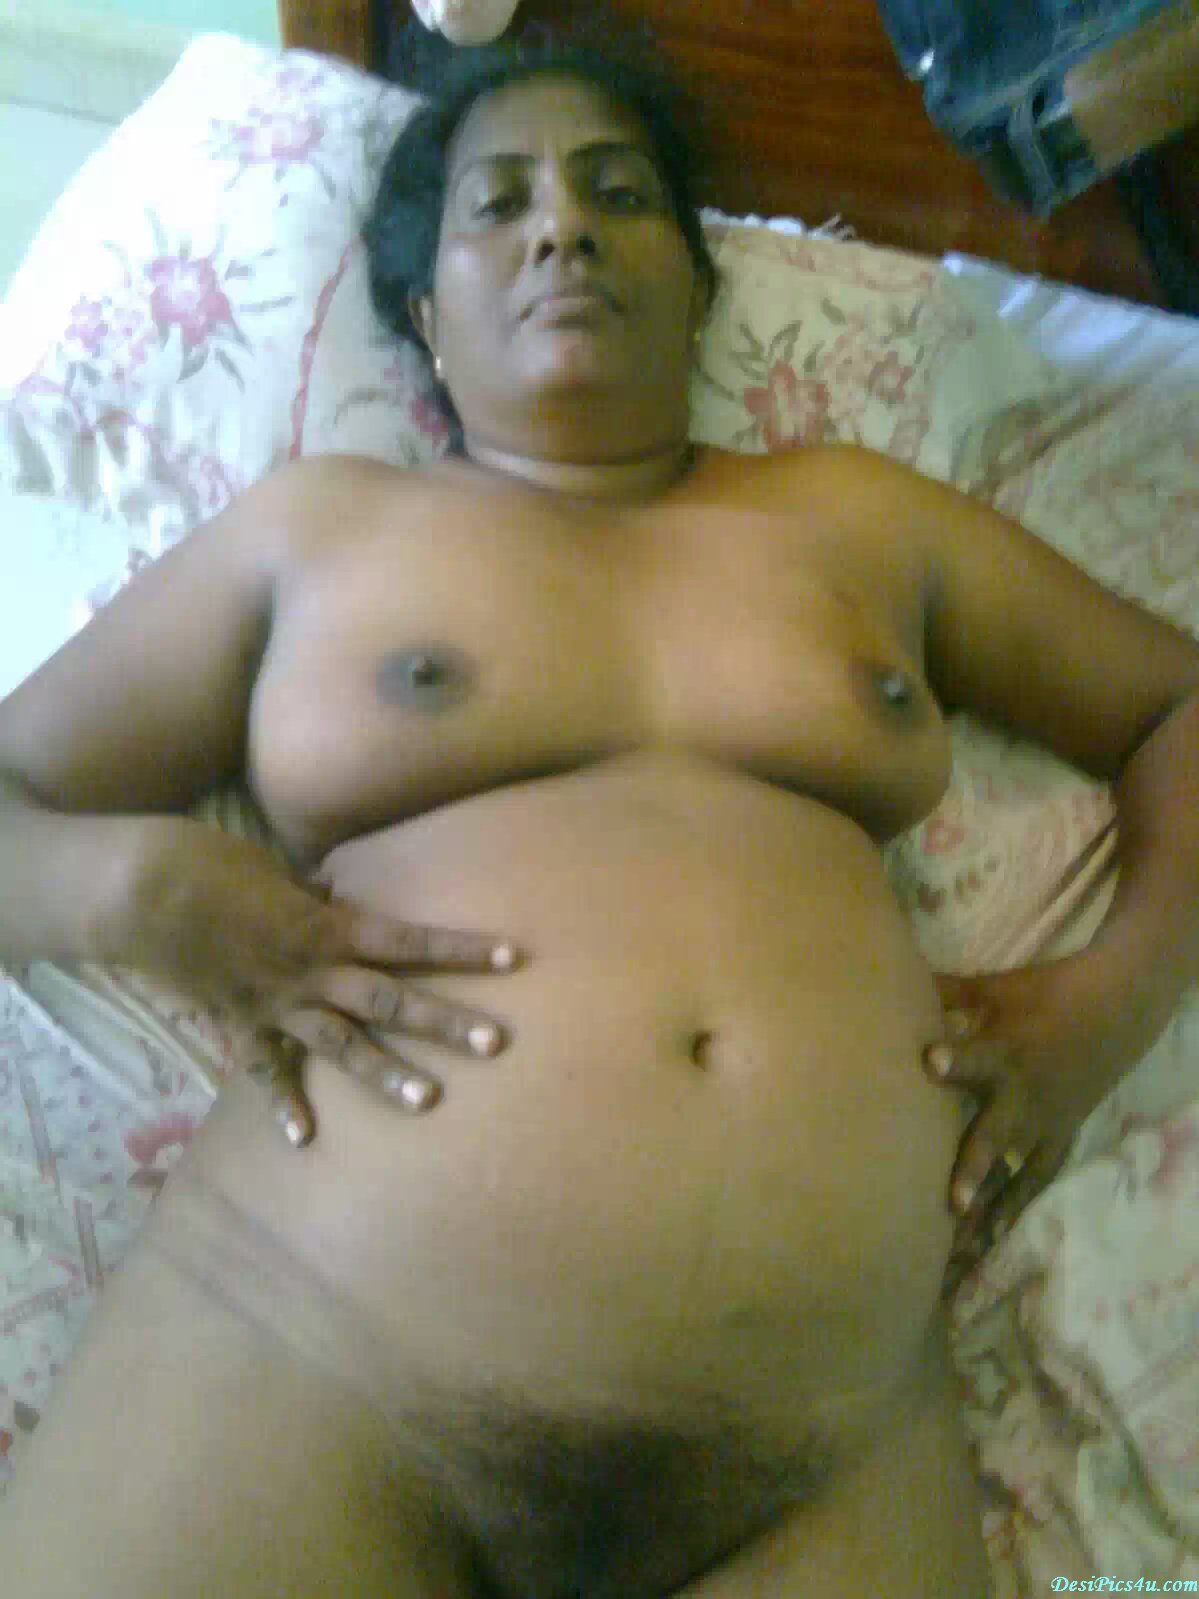 Desi older nude sex sorry, that